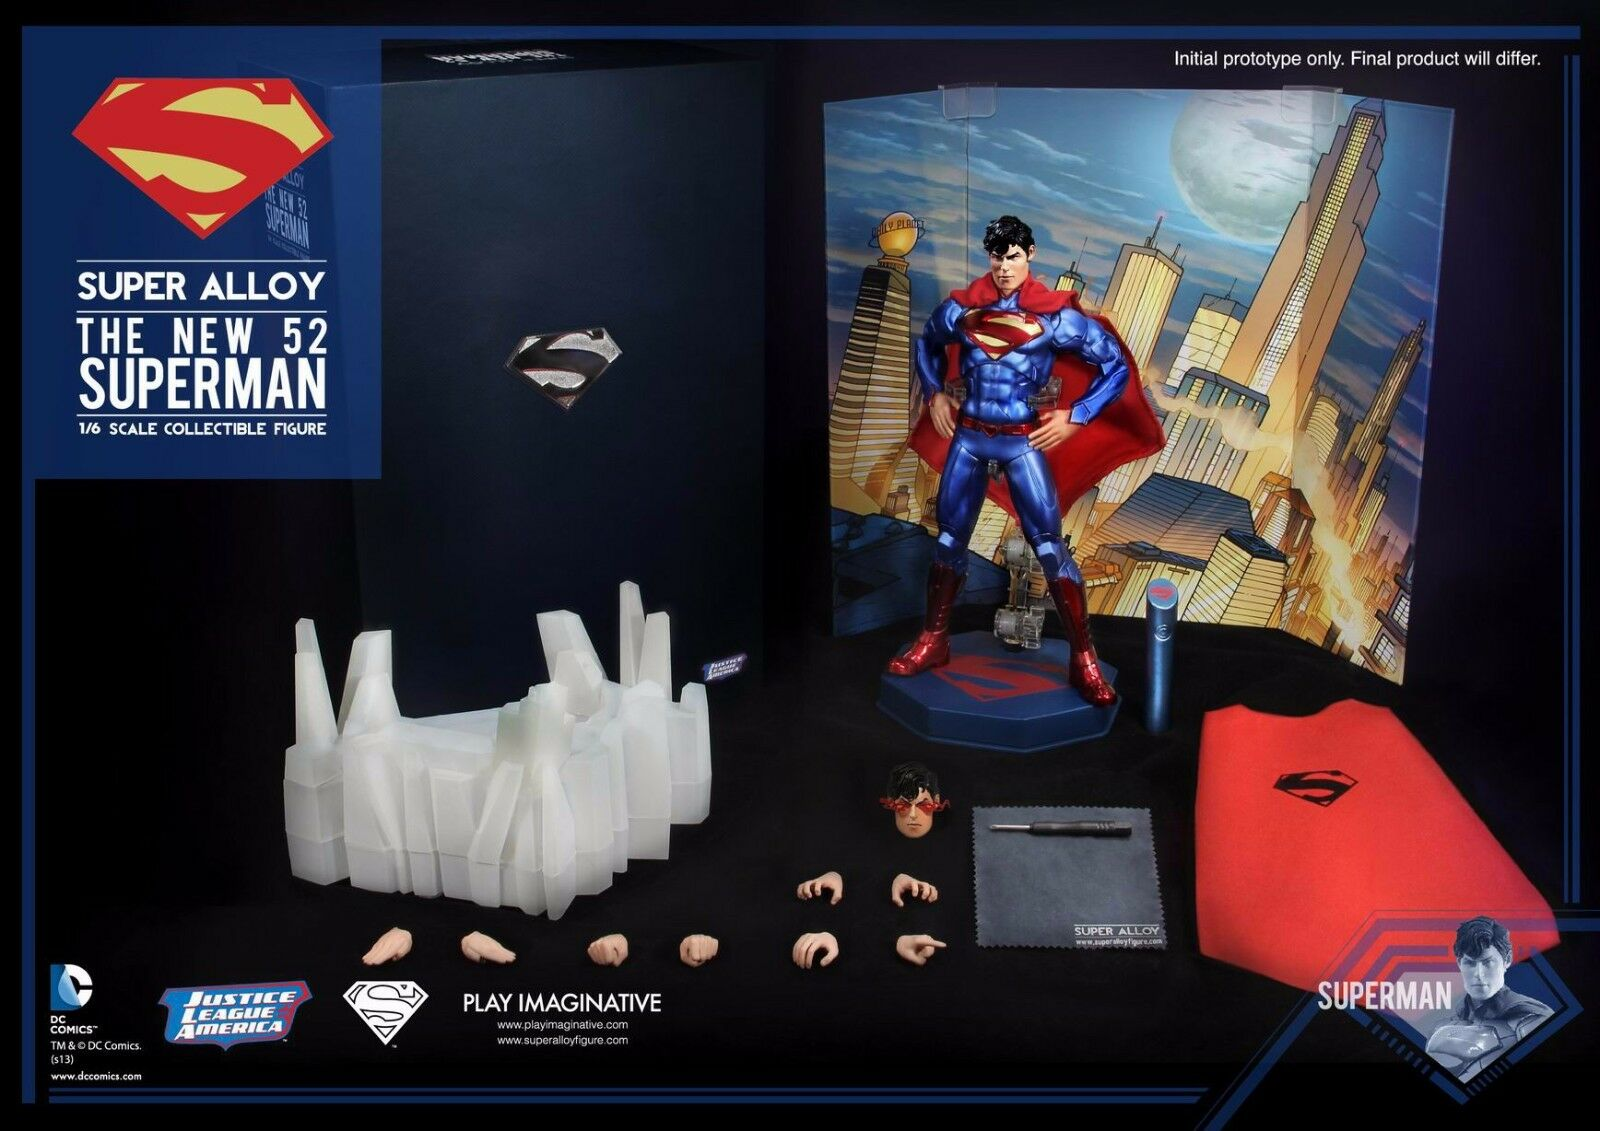 Play Imaginative DC Comic Justice League Super  tuttioy The nuovo 52 Superuomo 1 6 FIG  ampia selezione